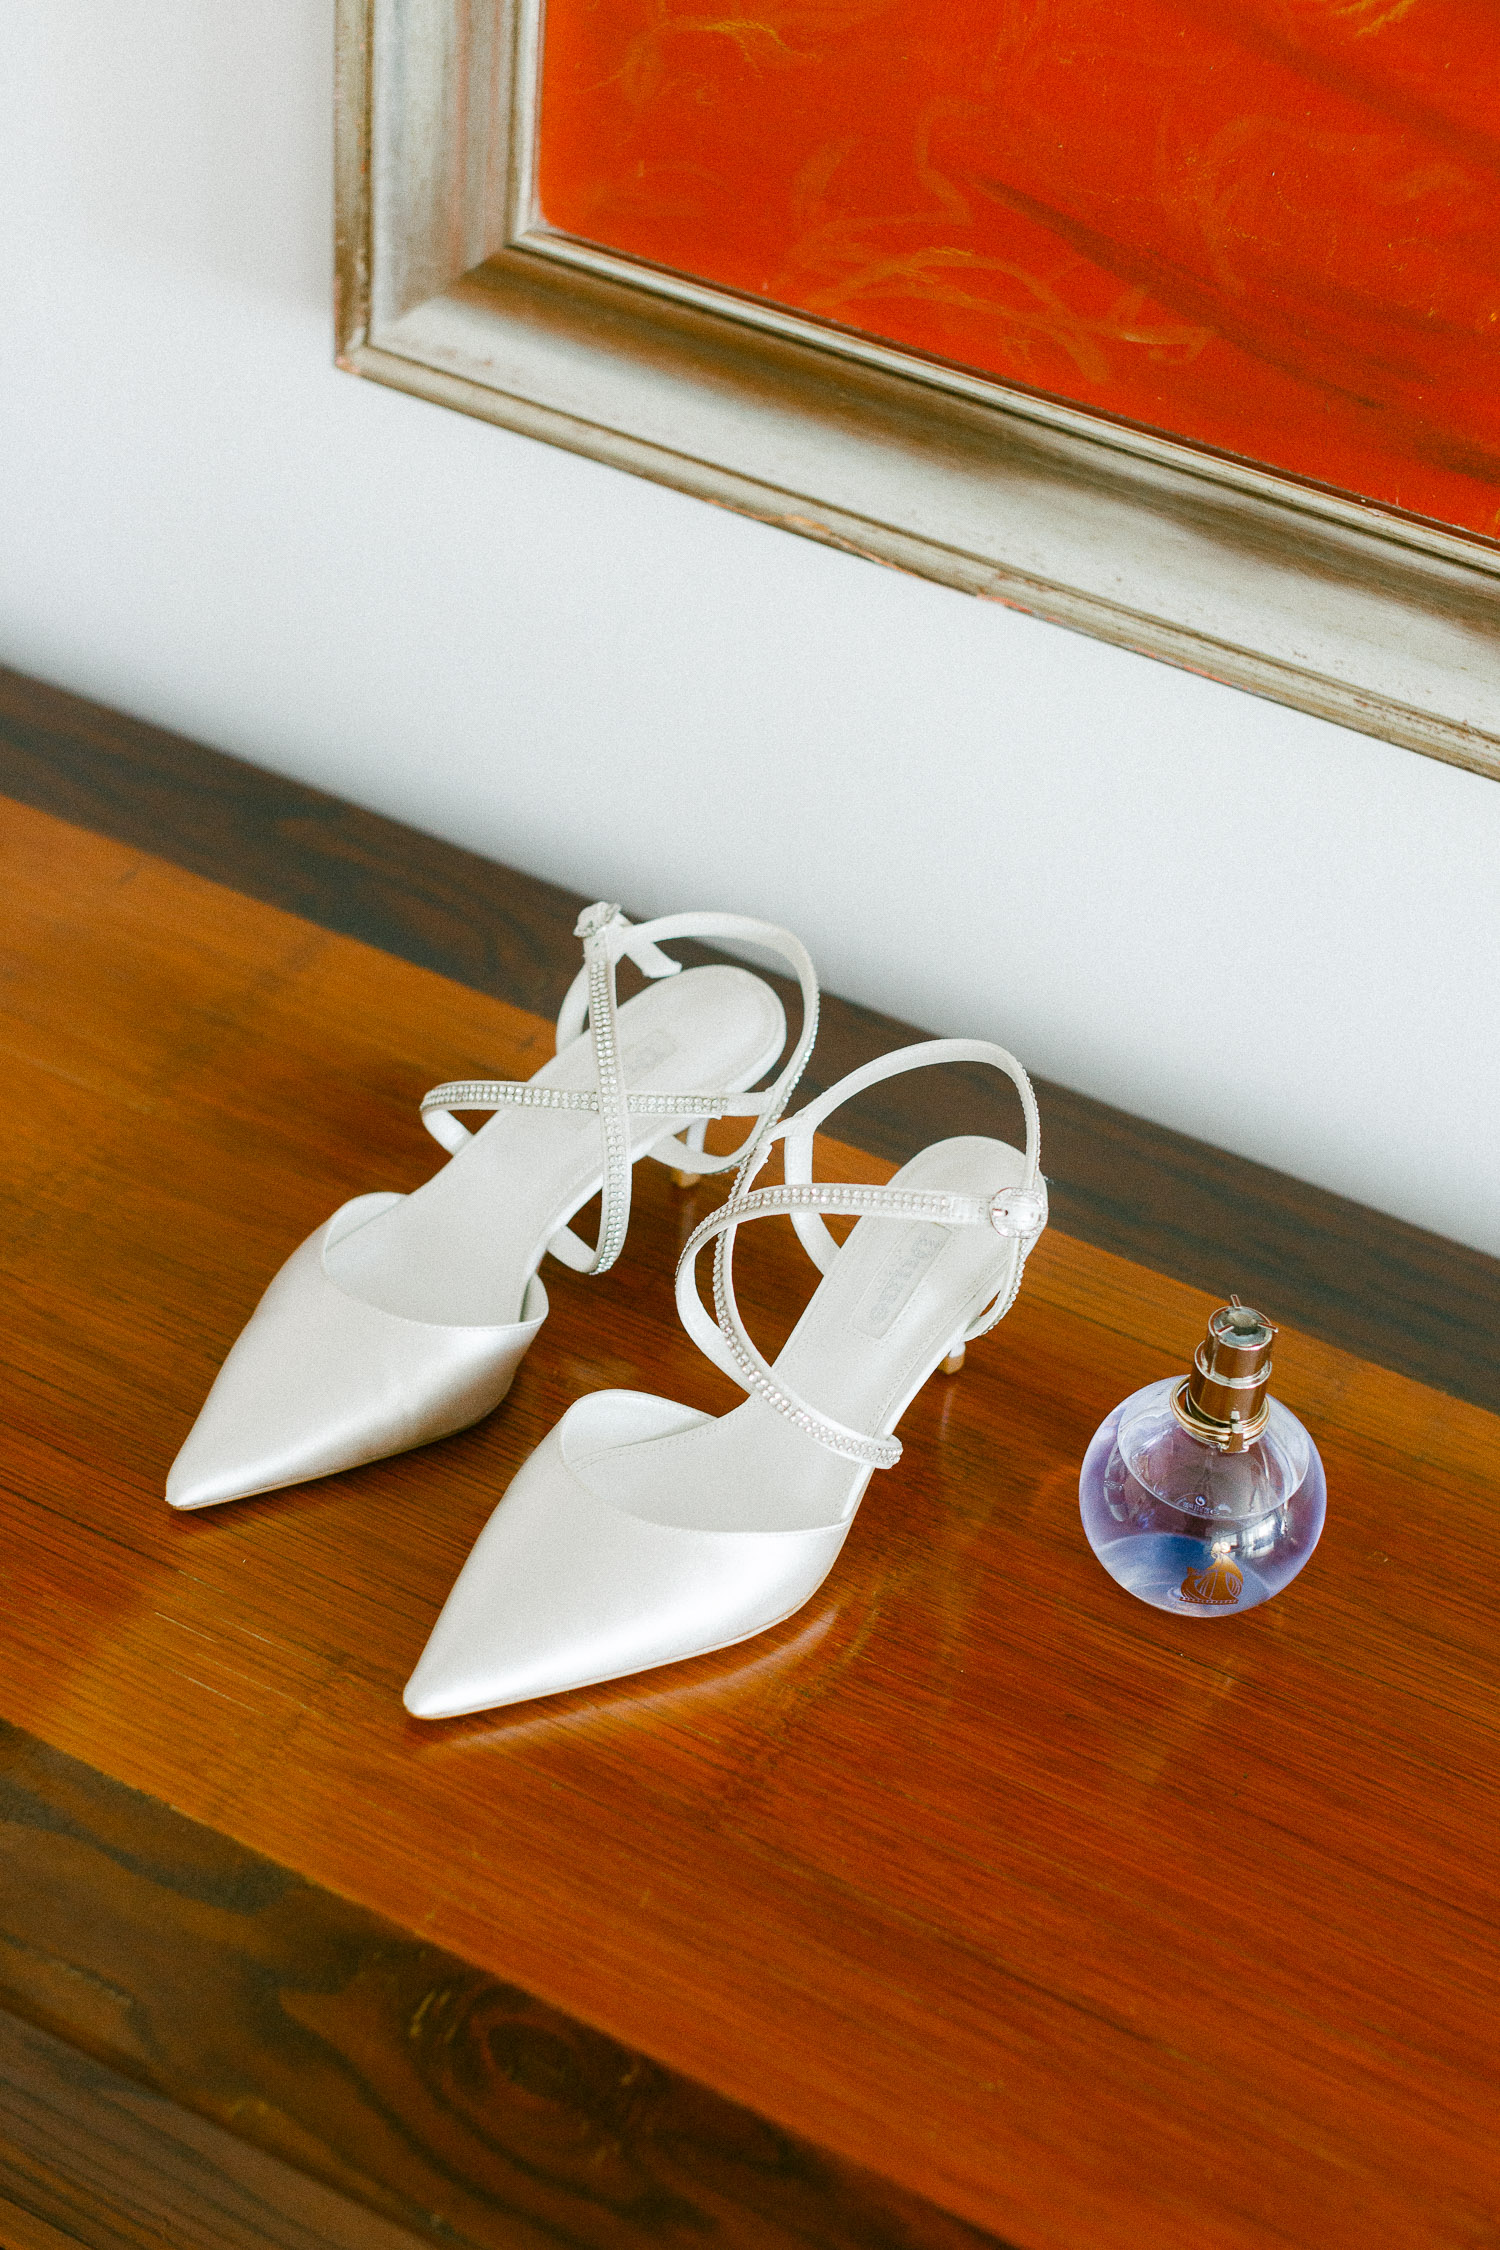 Bridal exquisite comfy shoes at an Old World micro wedding at Corfu